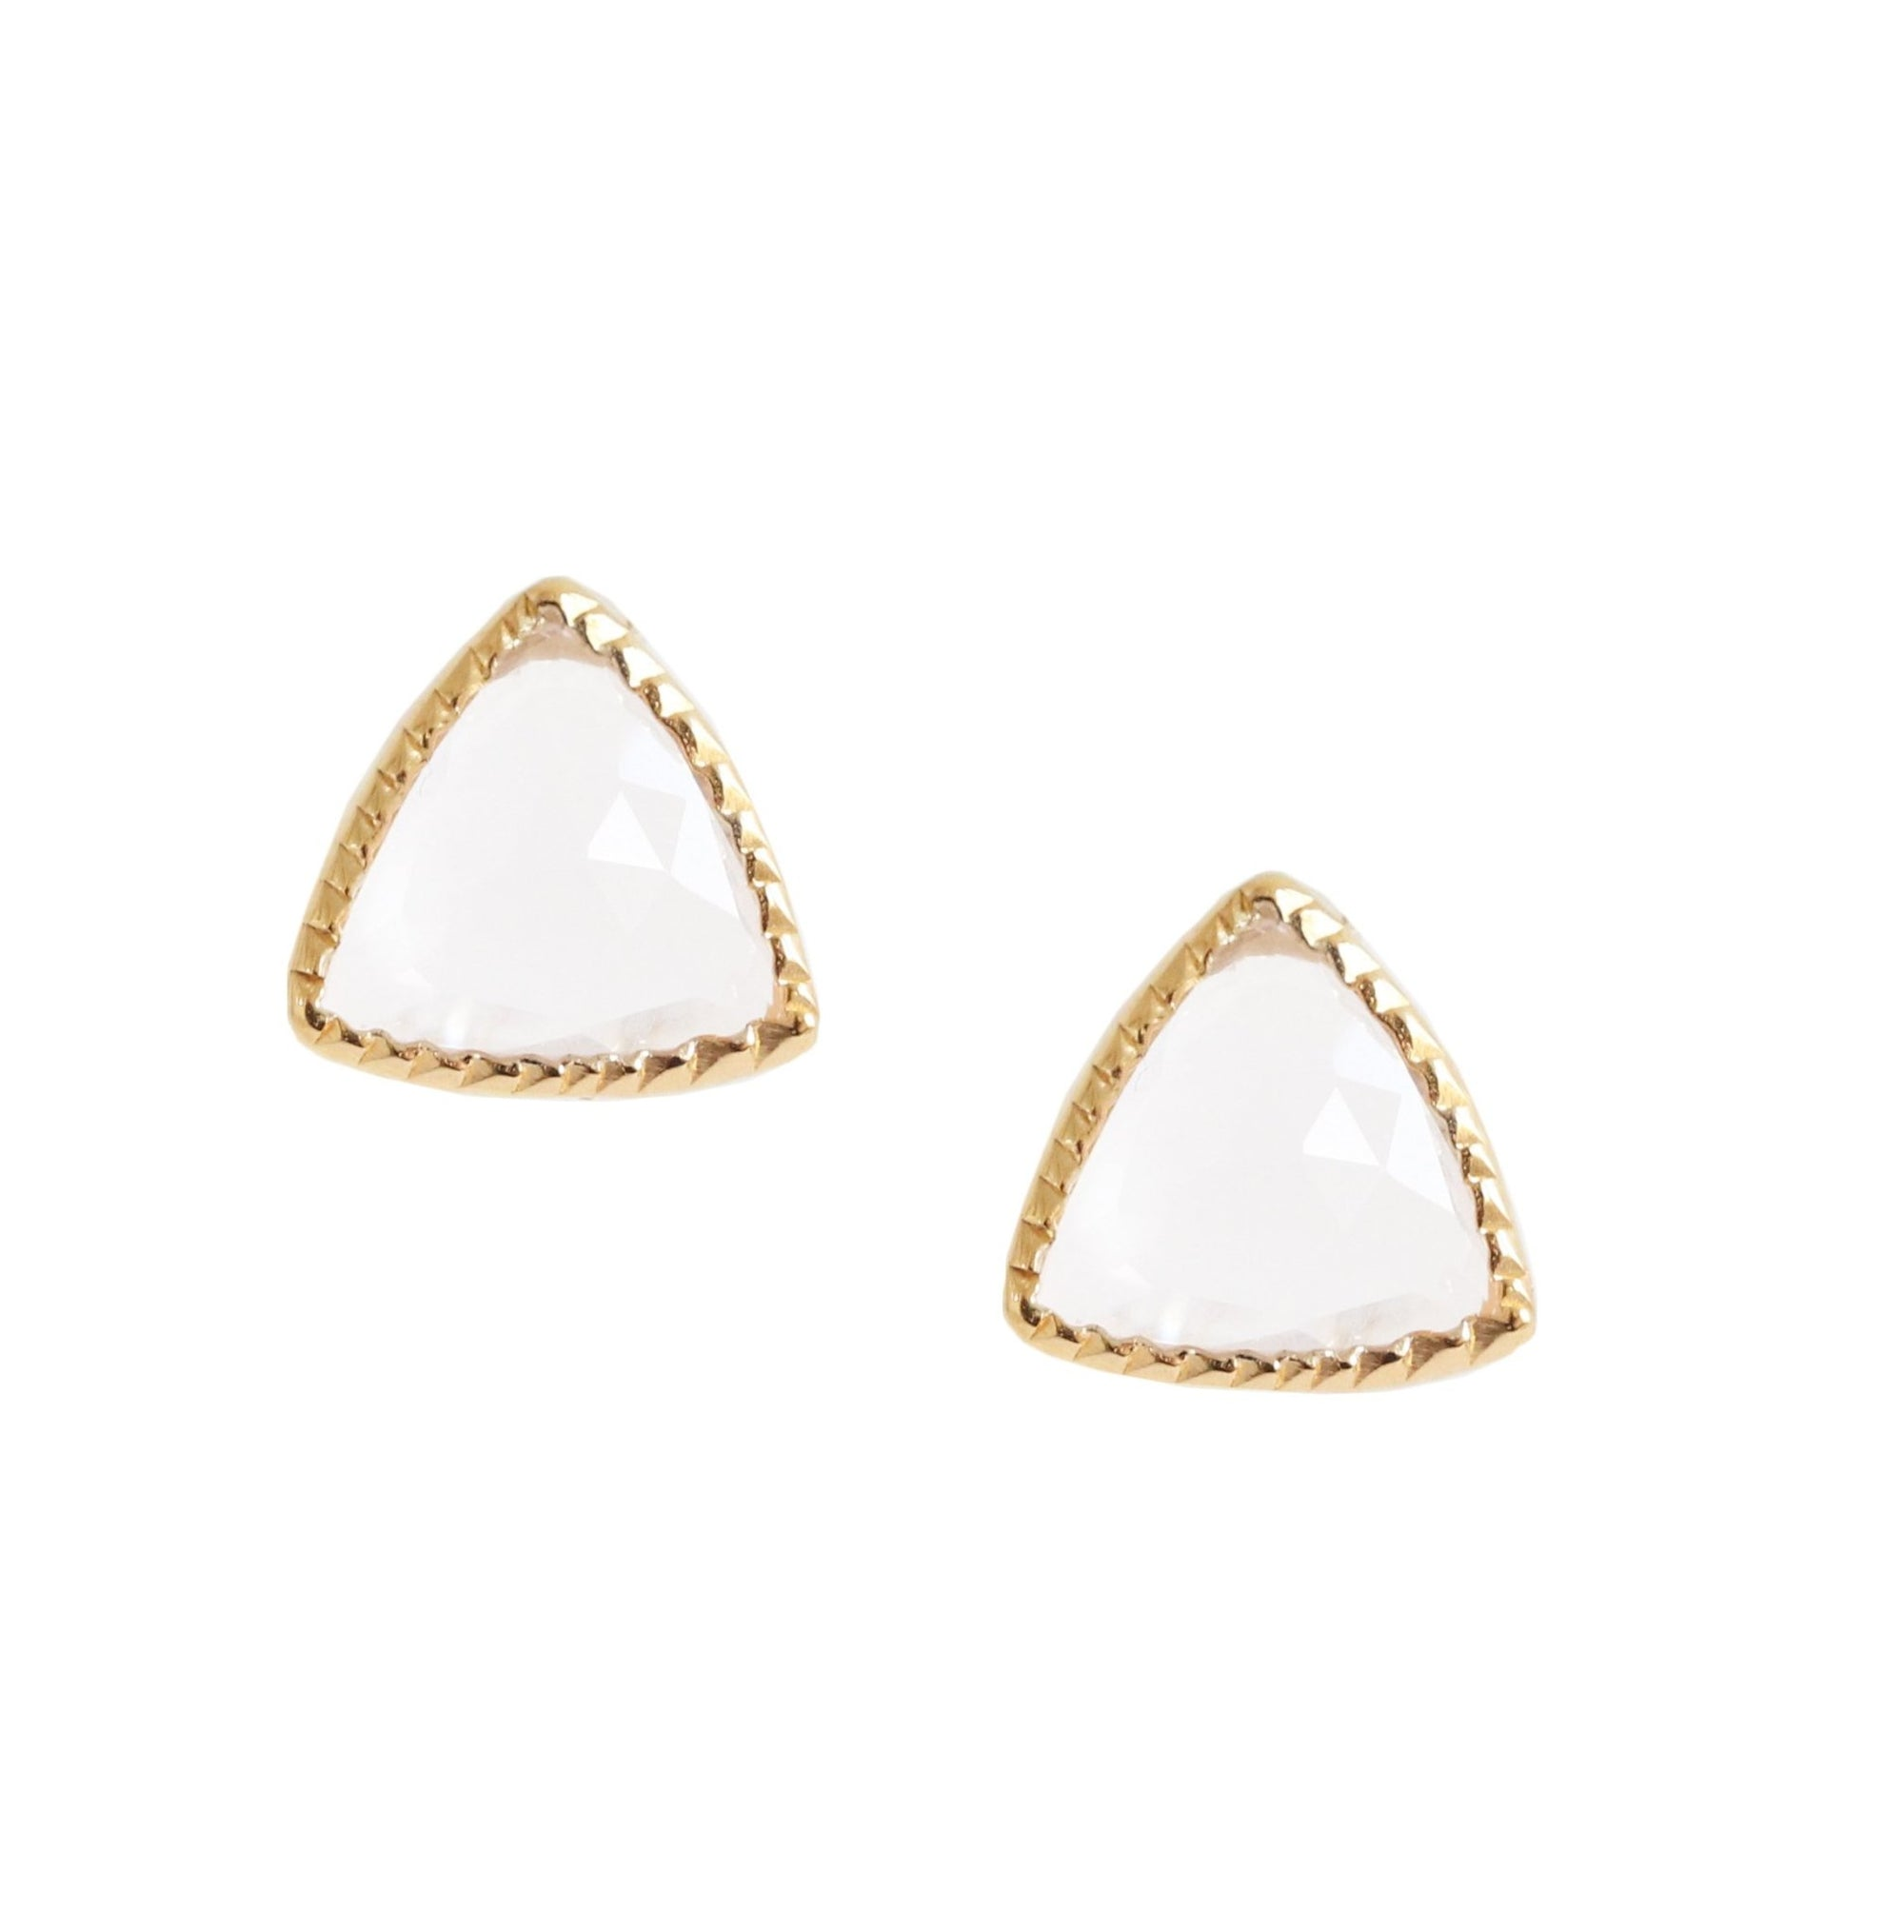 MINI FREEDOM STUD EARRINGS - WHITE TOPAZ & GOLD - SO PRETTY CARA COTTER